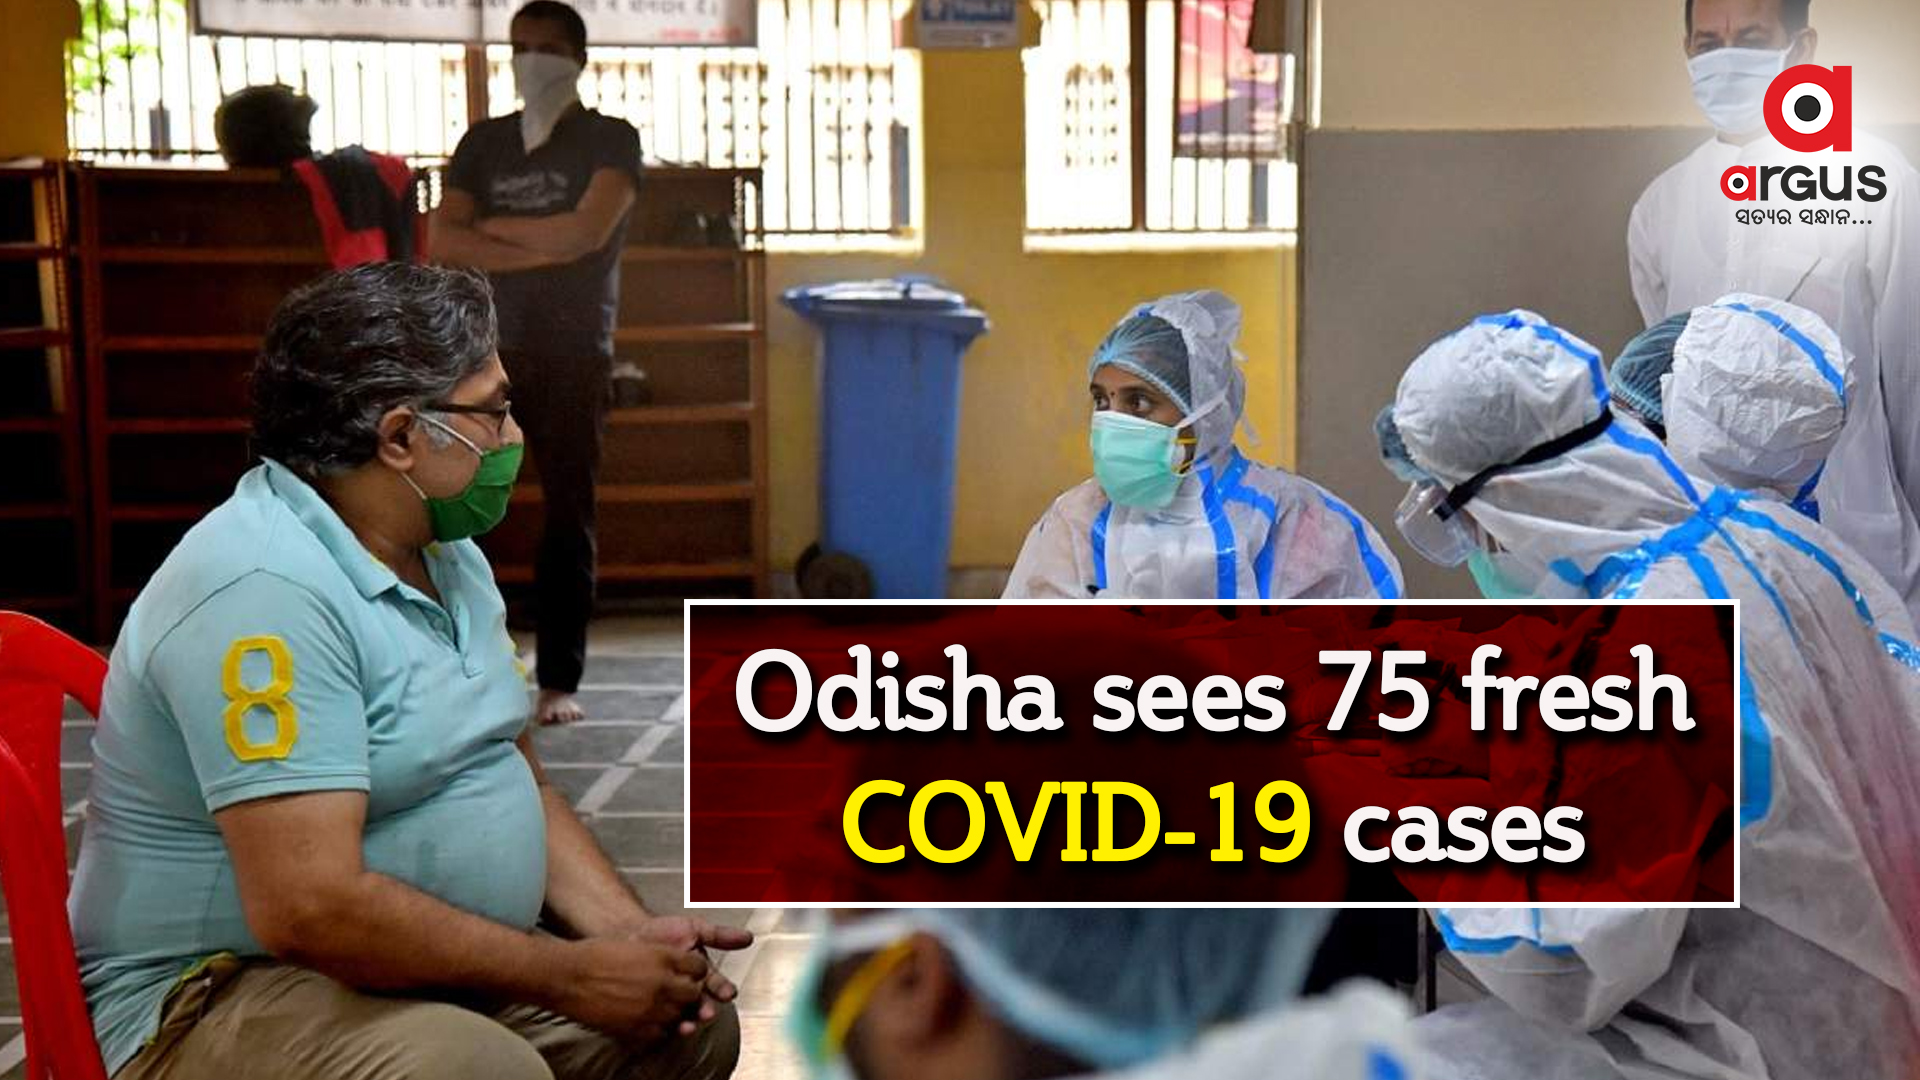 Odisha reports 75 new COVID-19 cases; Active cases stand at 732